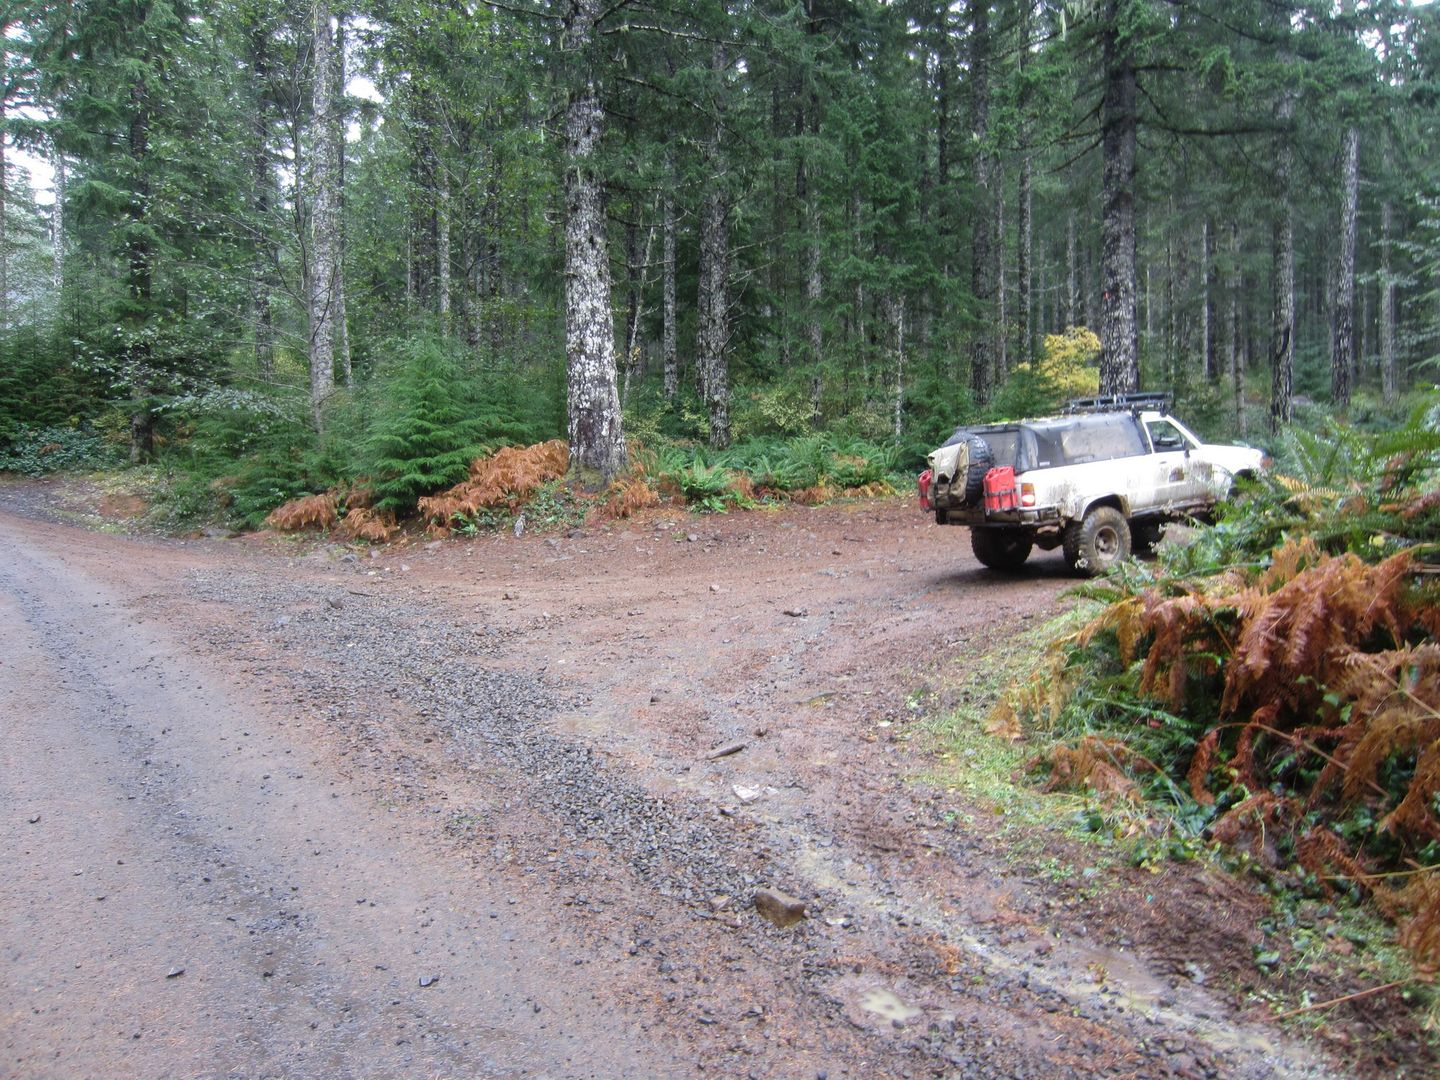 Firebreak Five / Tillamook State Forest - Waypoint 4: Straight Across Gravel Road to Stay on Firebreak Five